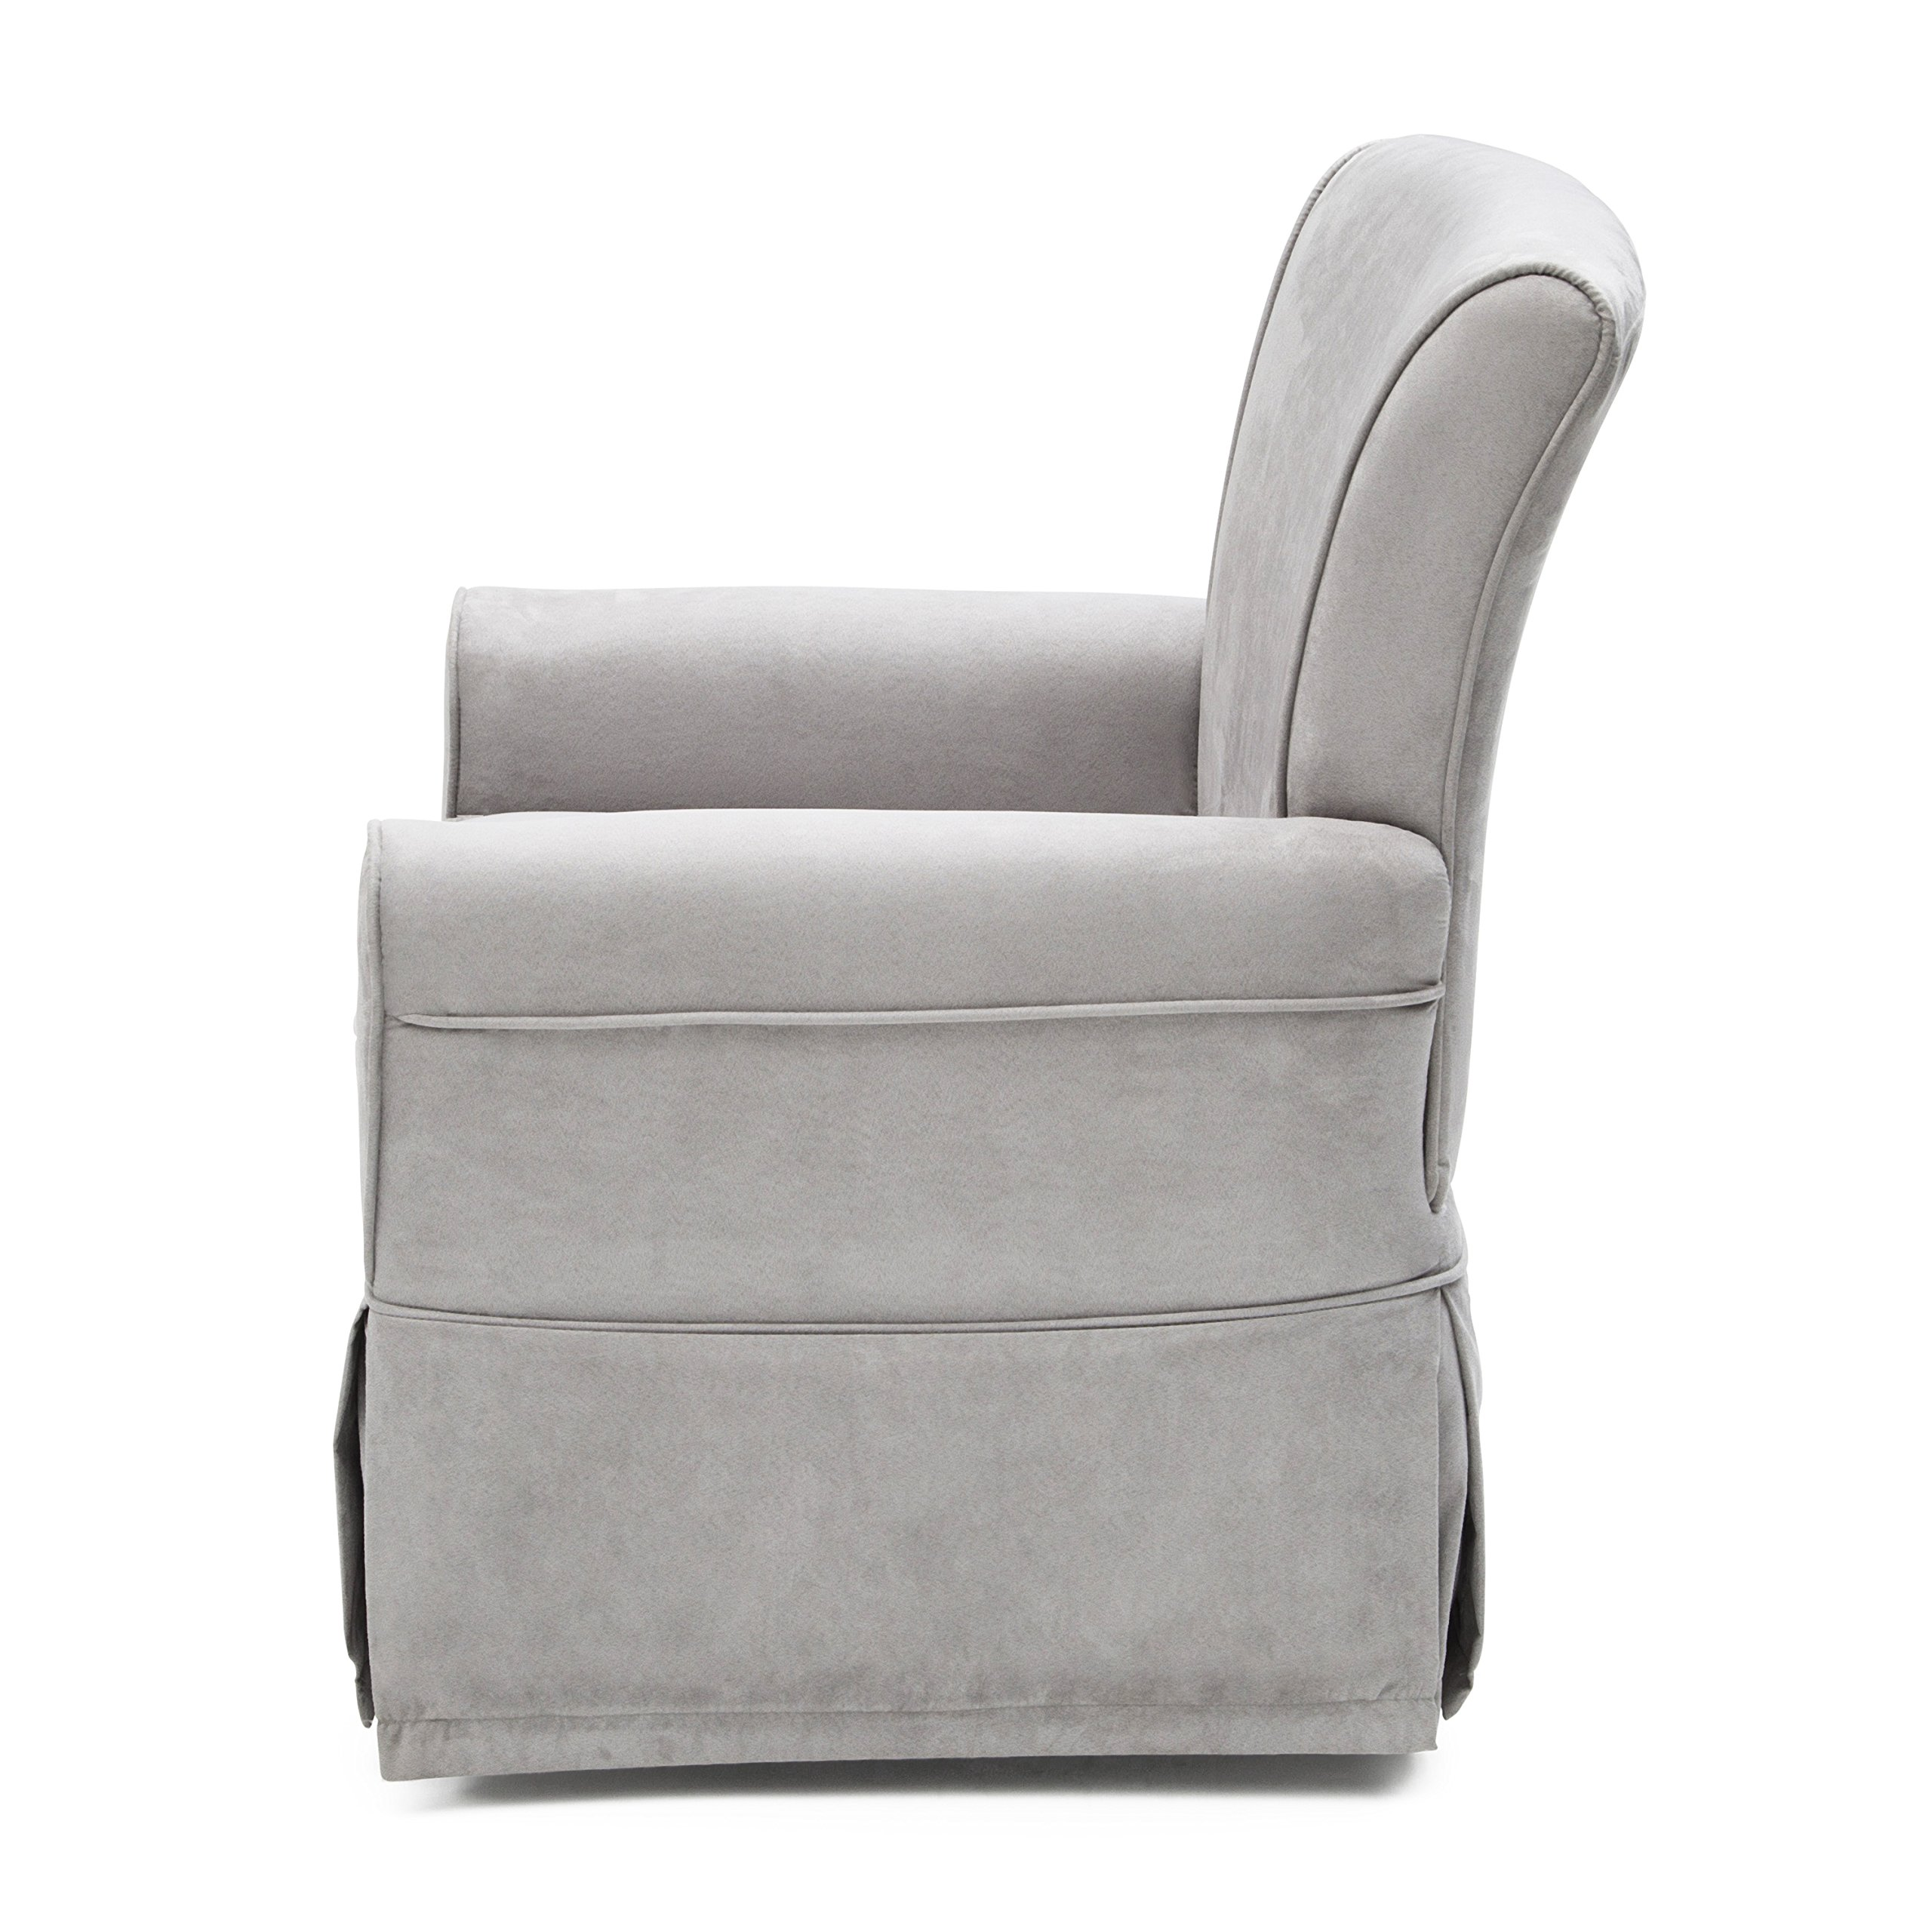 Delta Furniture Benbridge Upholstered Glider Swivel Rocker Chair, Dove Grey by Delta Furniture (Image #3)